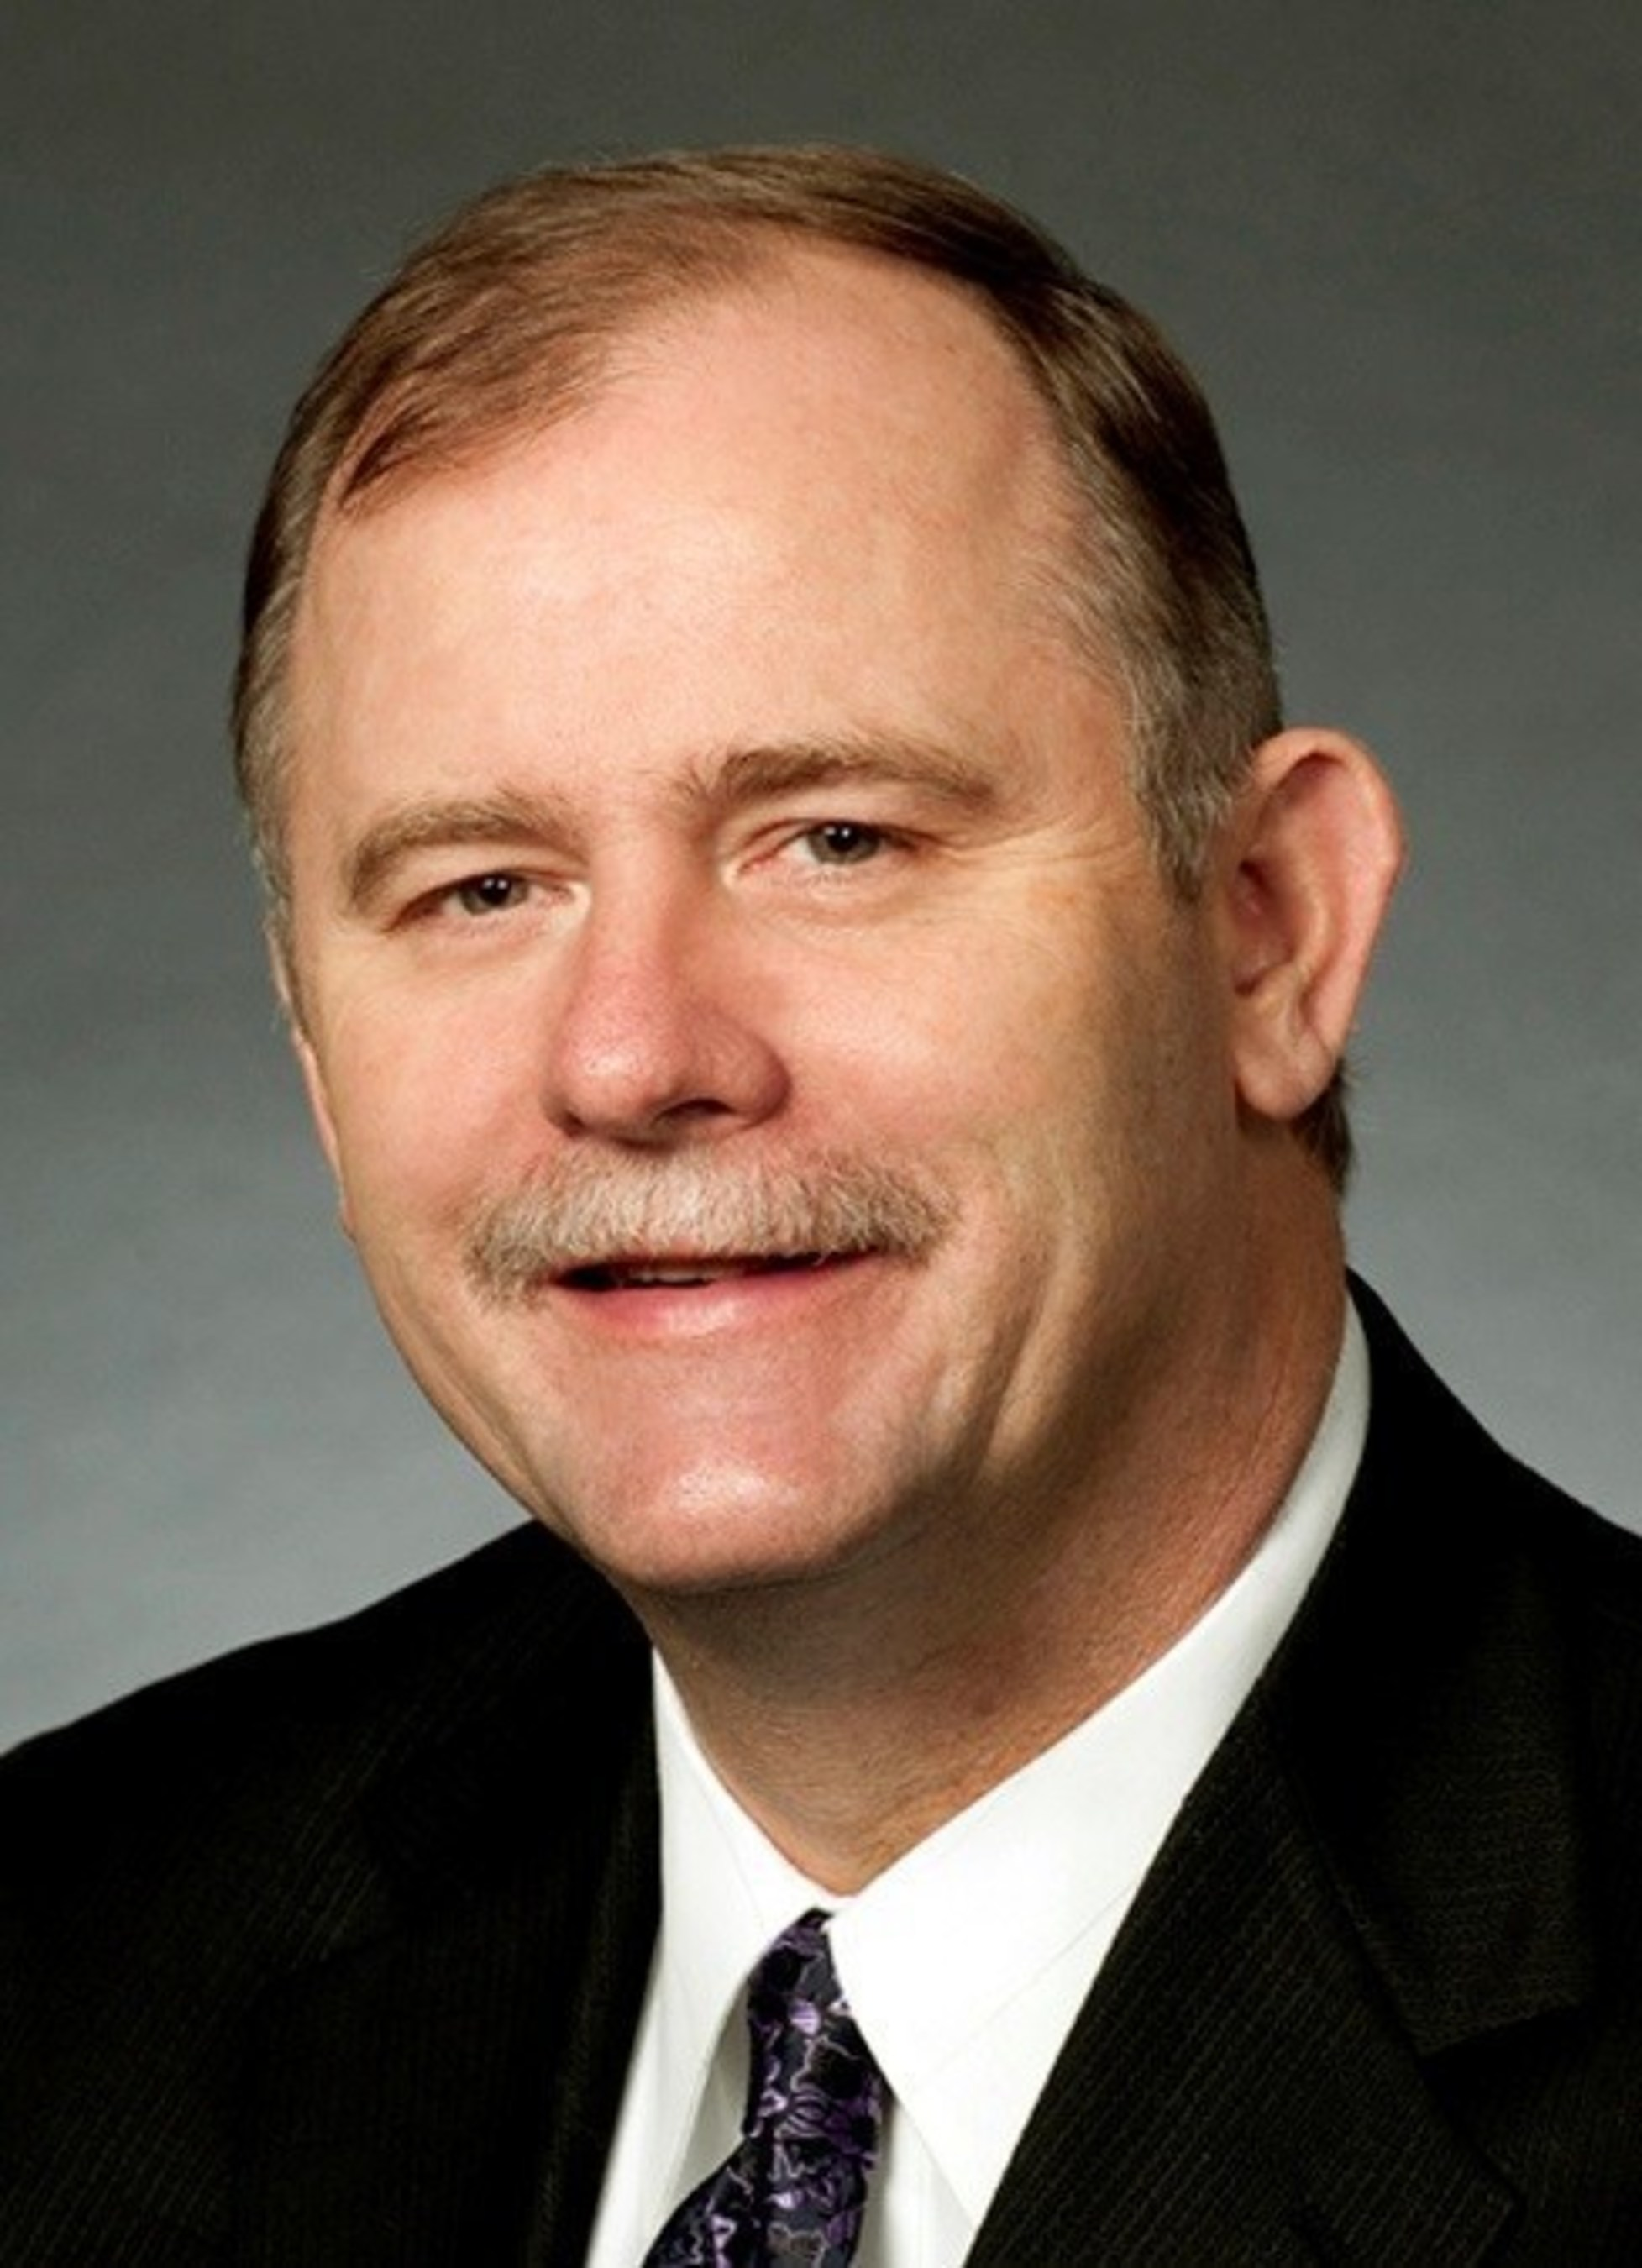 Charles P. Nelson will join Voya Financial as chief executive officer of Retirement on May 1, 2015.